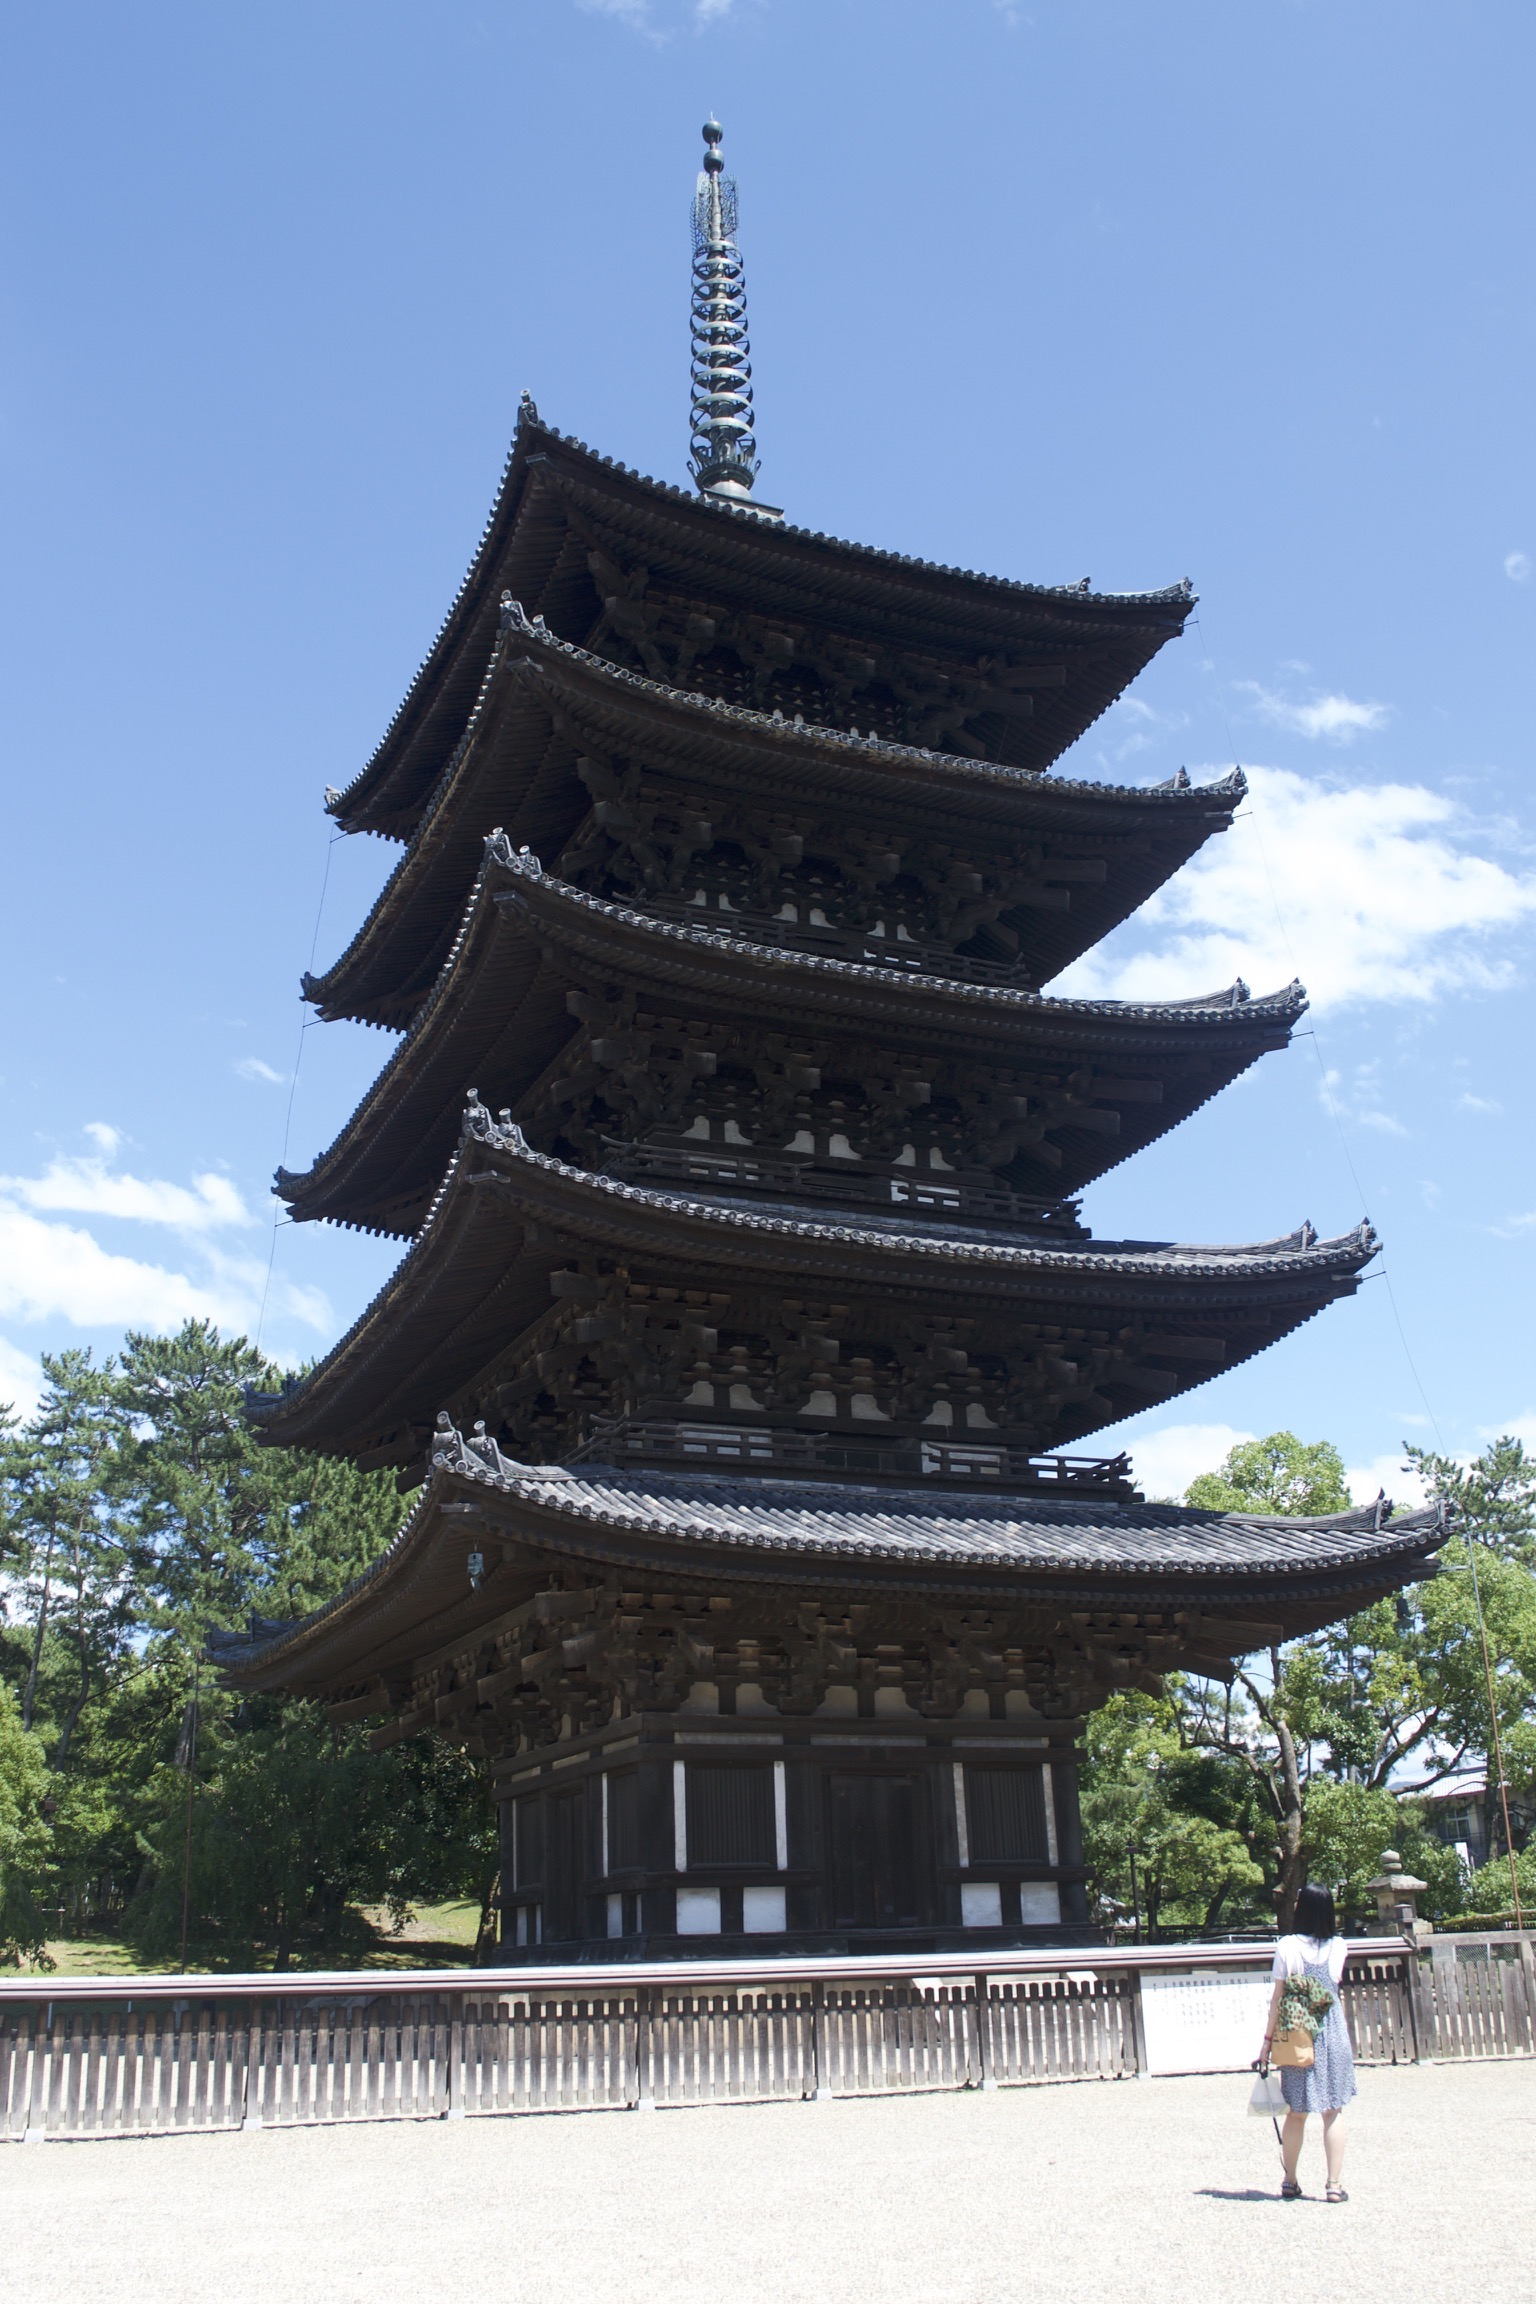 A five-story pagoda with a metal antenna.